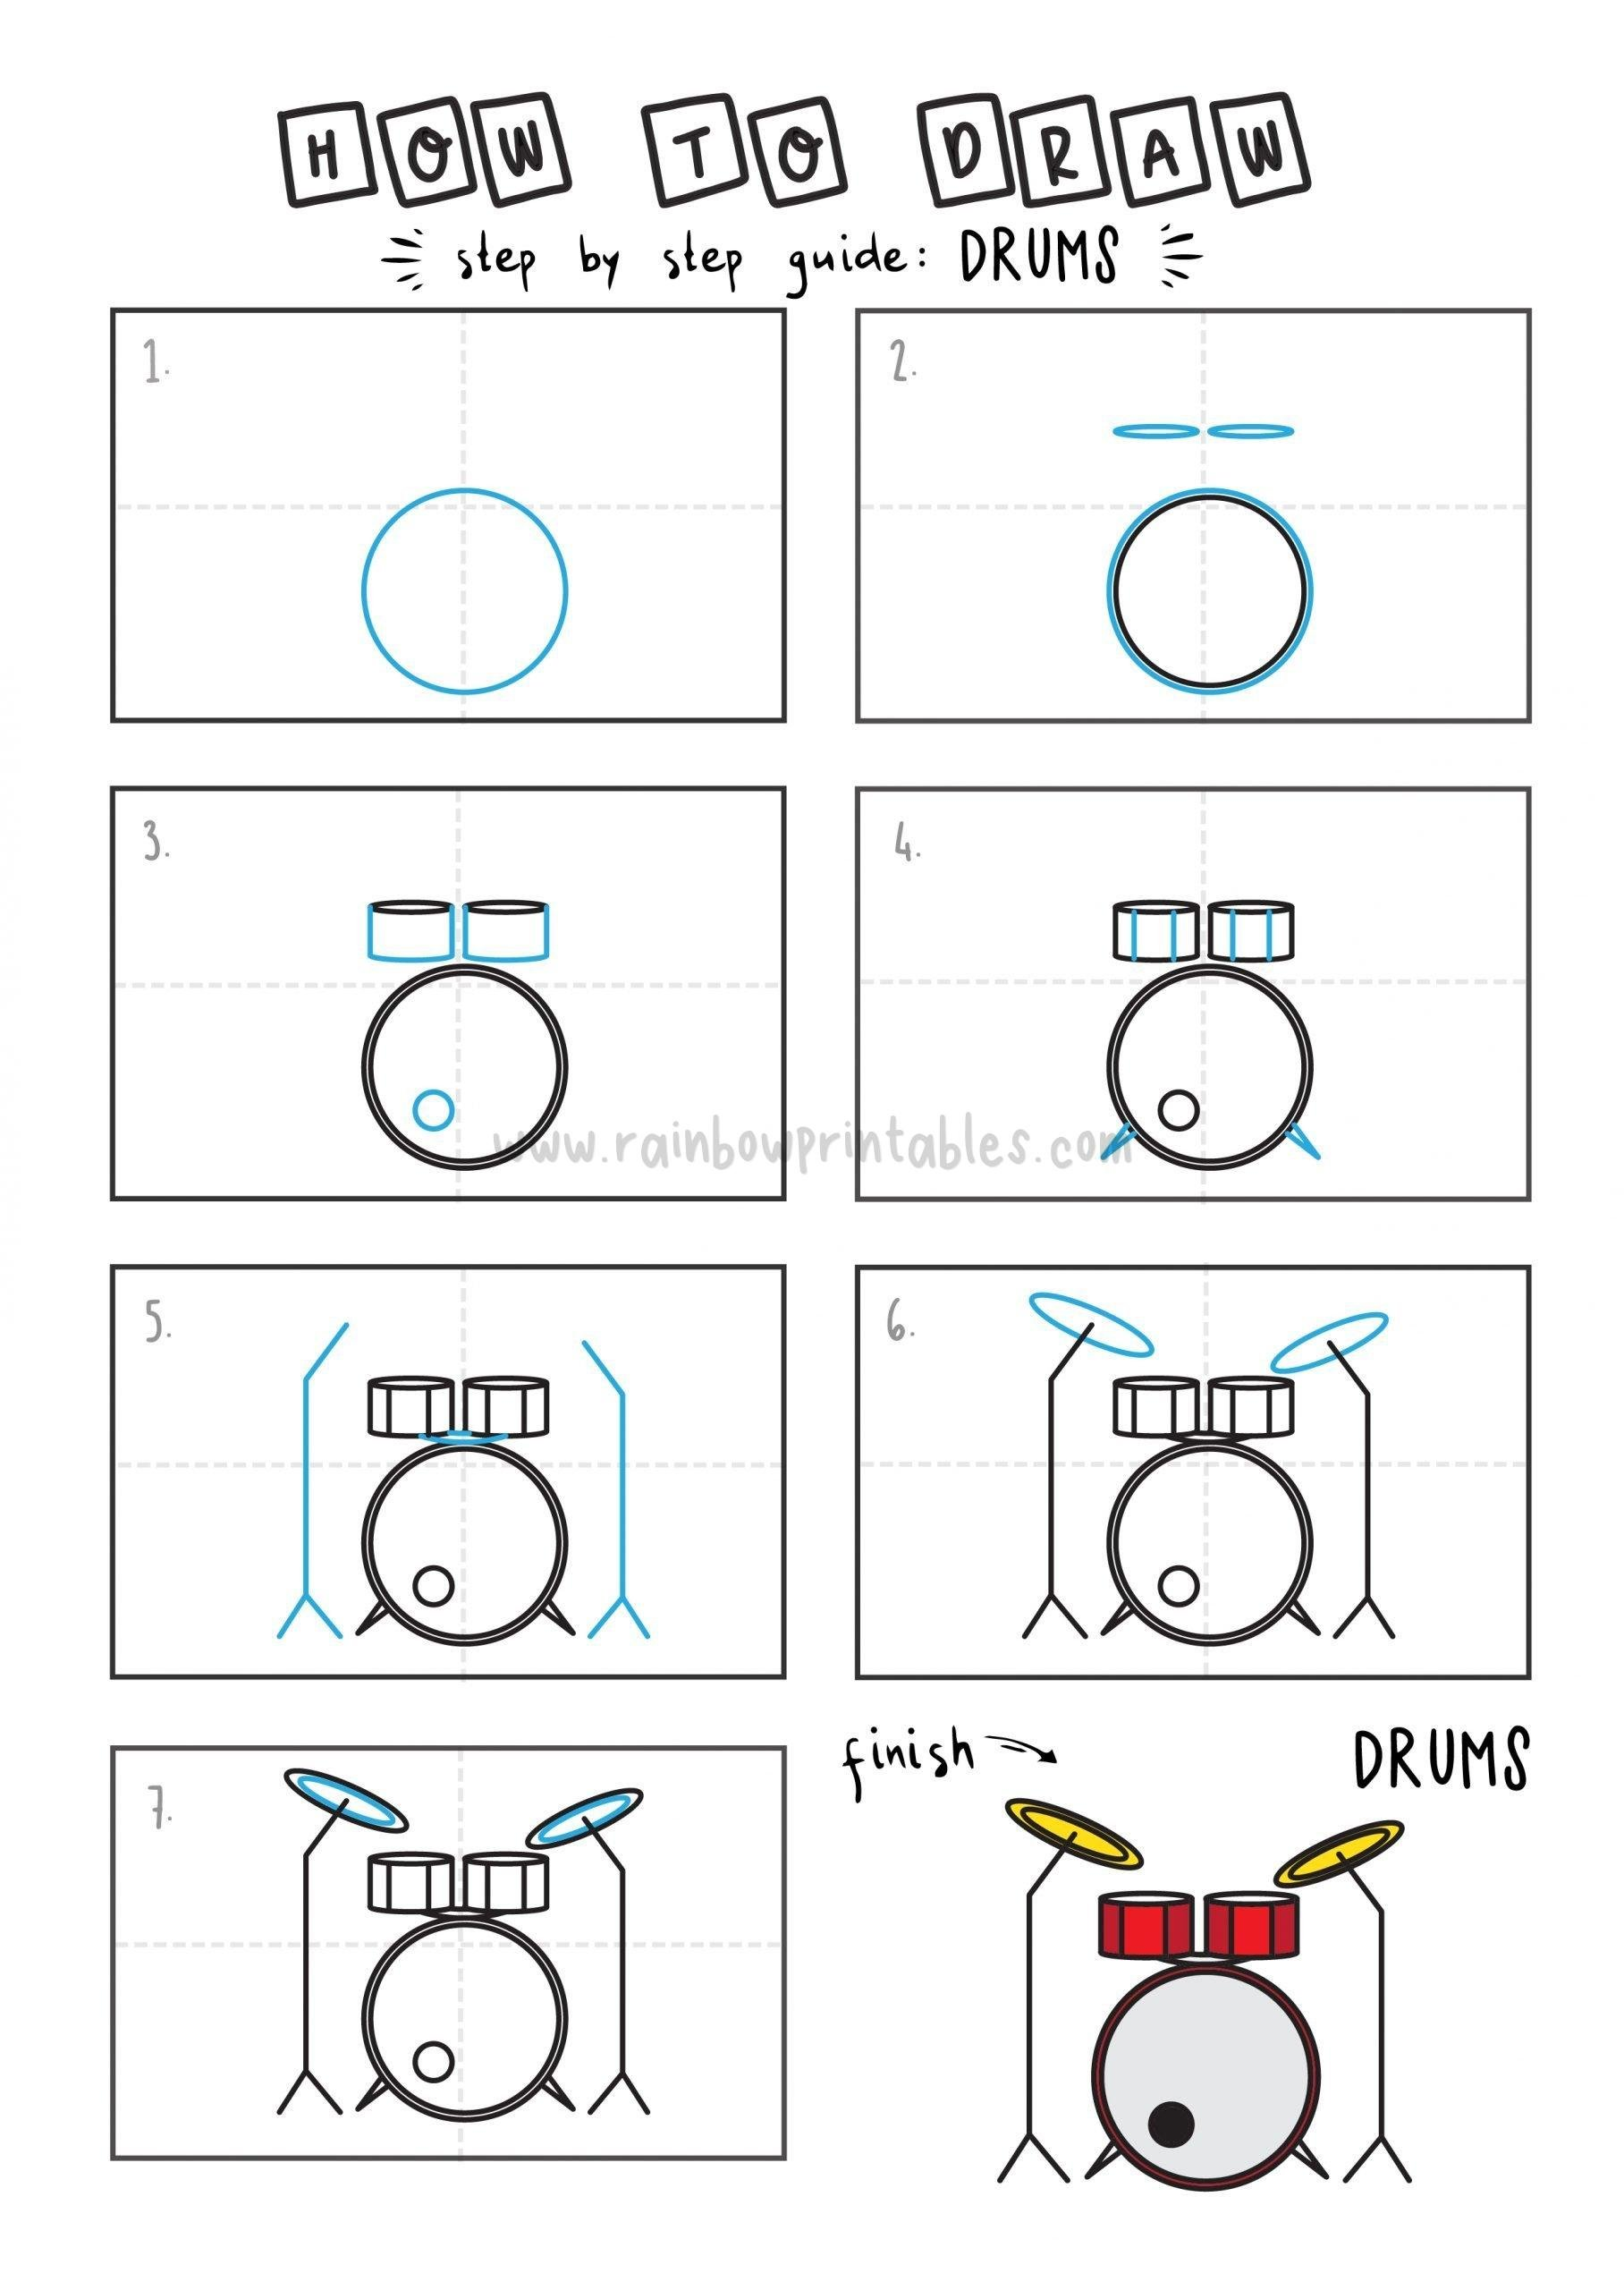 How To Draw Drum Drumming Step by Step Art Drawing Tutorial for Young Children